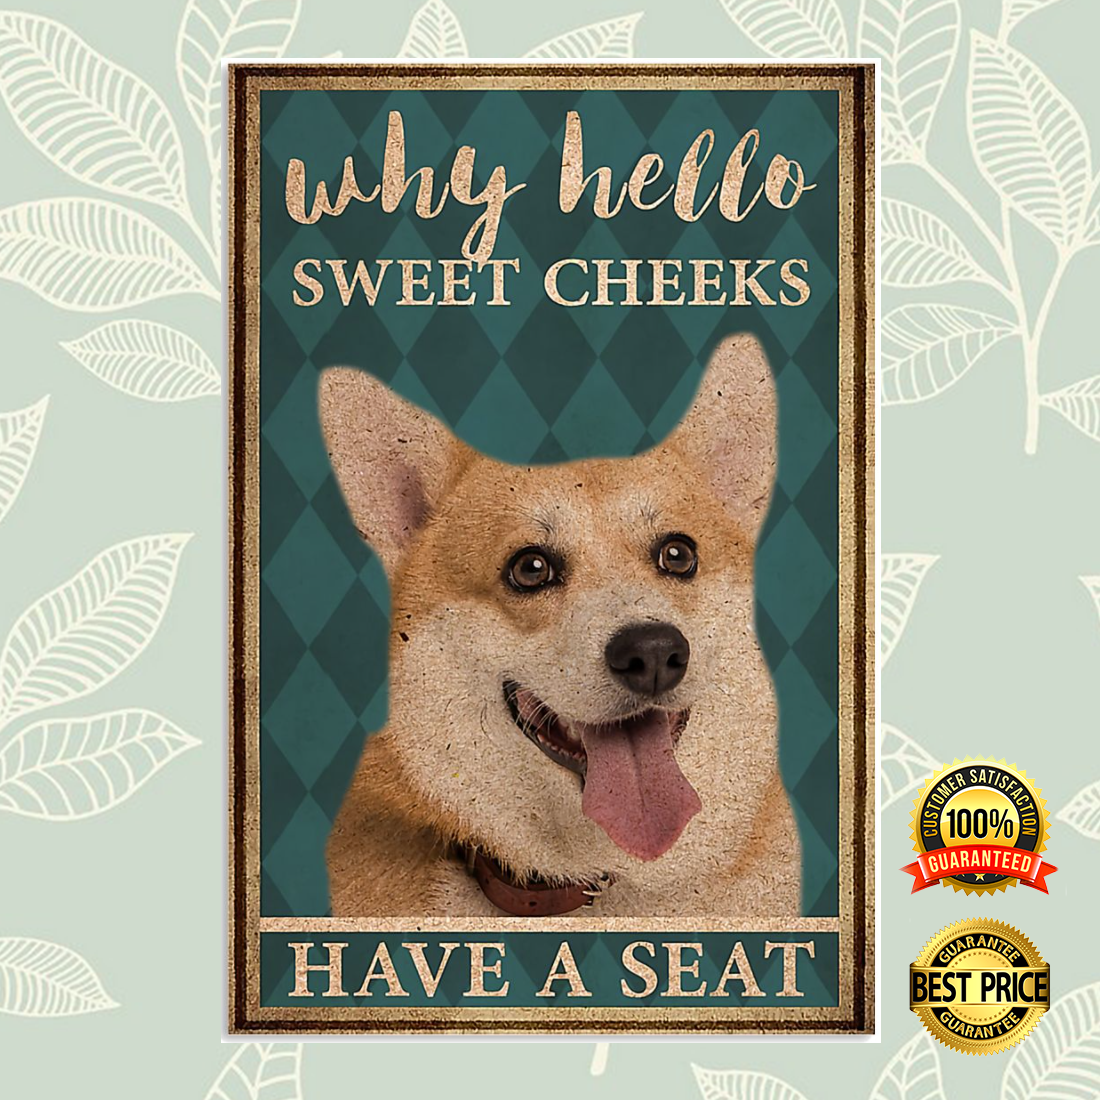 CORGI WHY HELLO SWEET CHEEKS HAVE A SEAT POSTER 4